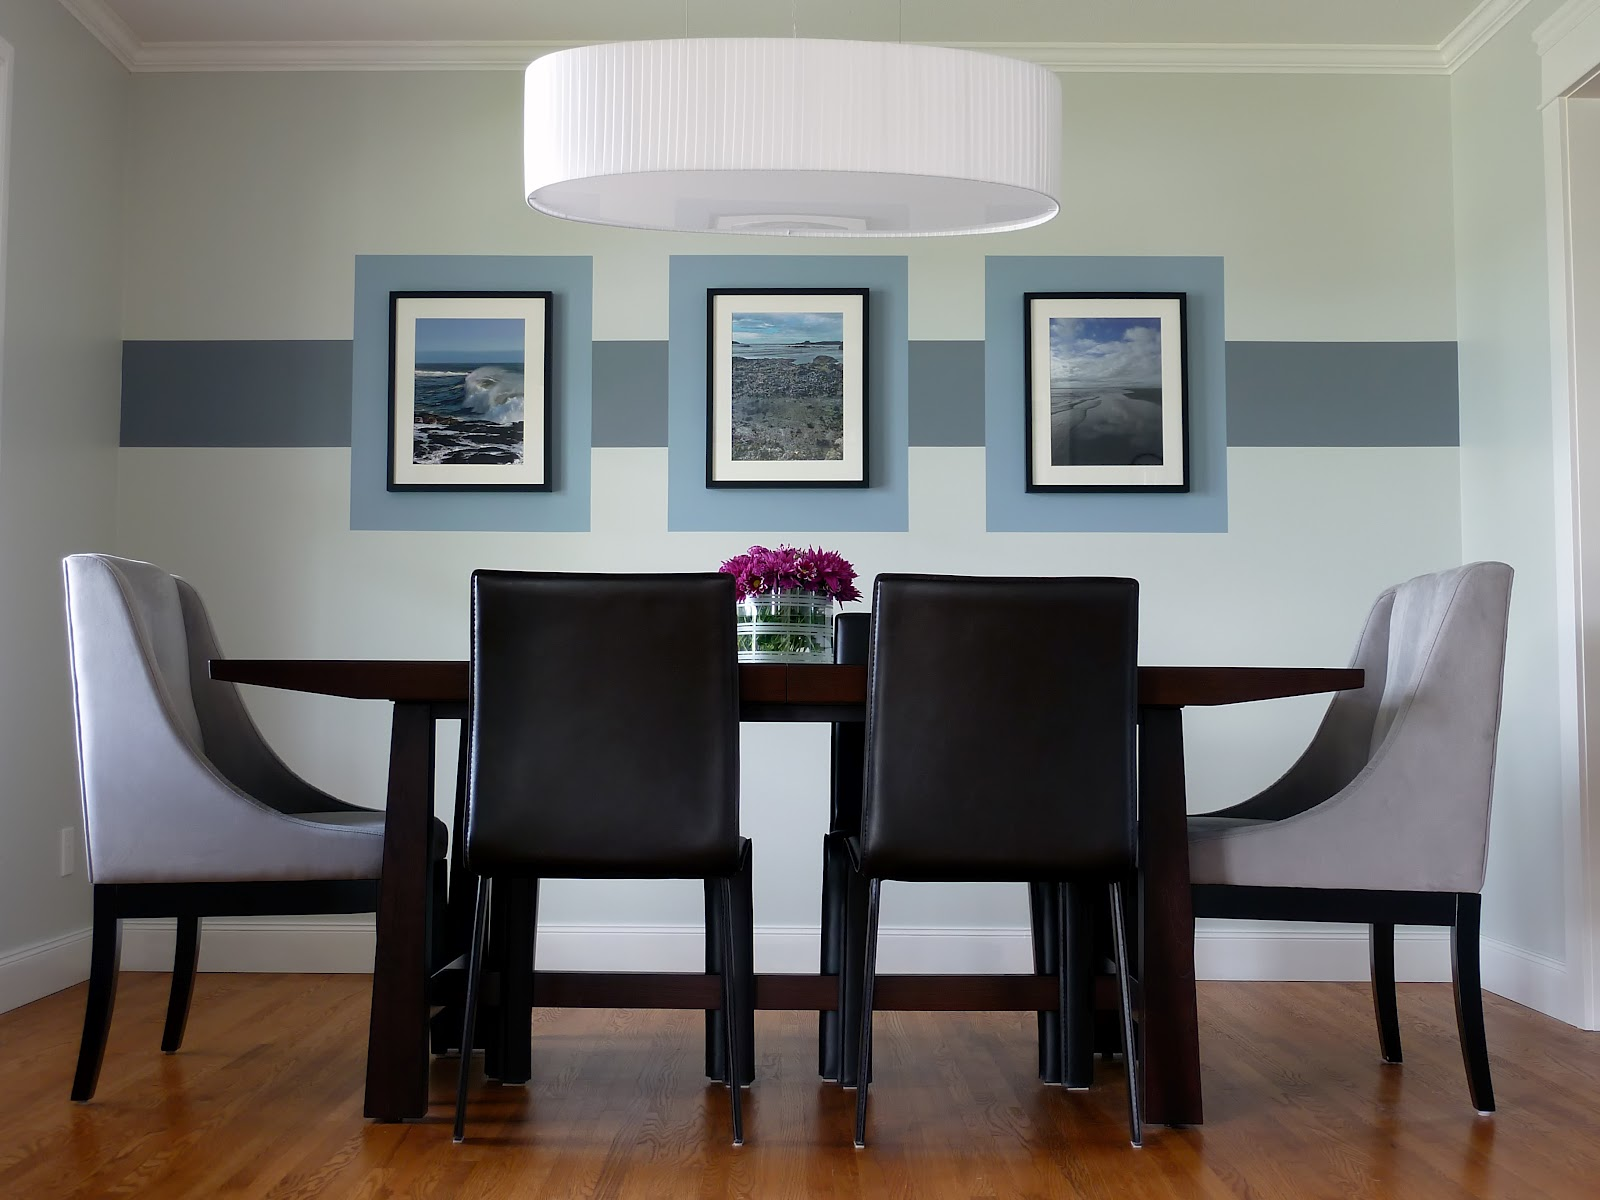 Symmetrical Dining Room Design